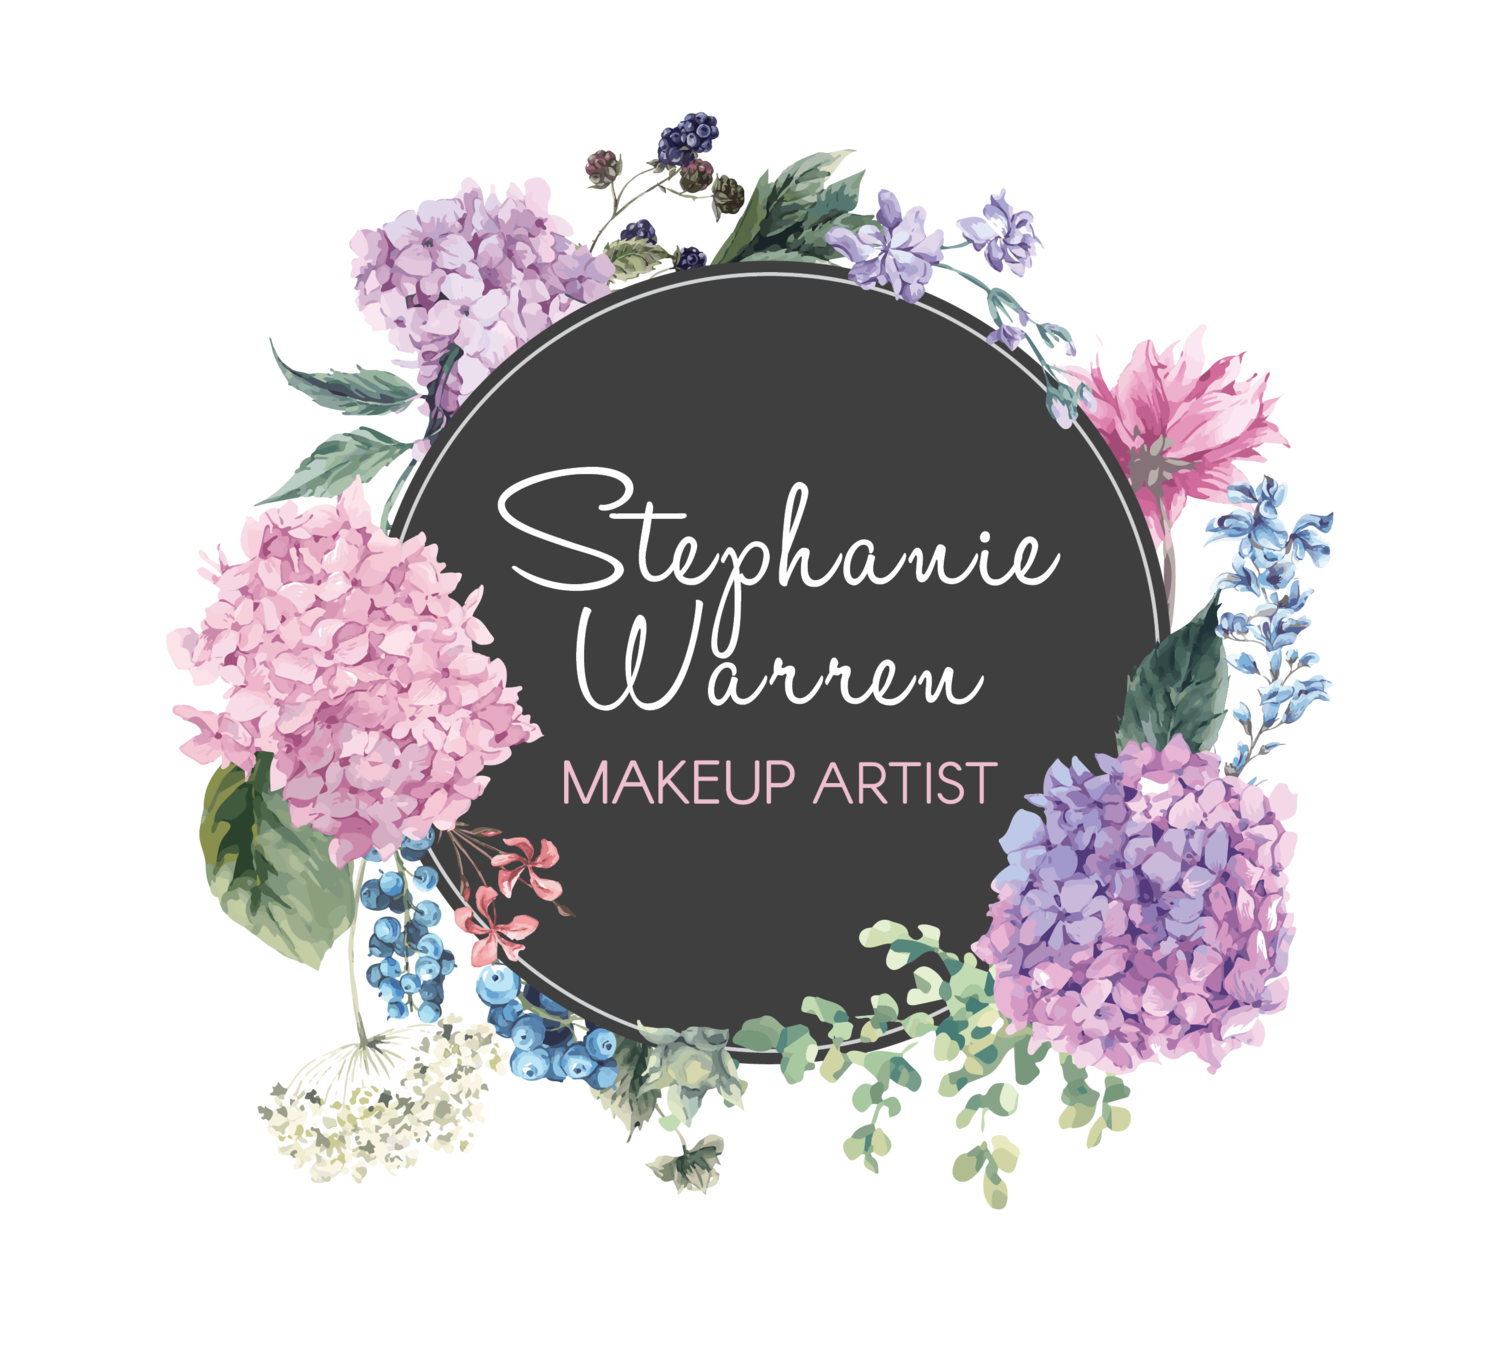 Stephanie Warren Makeup Artist